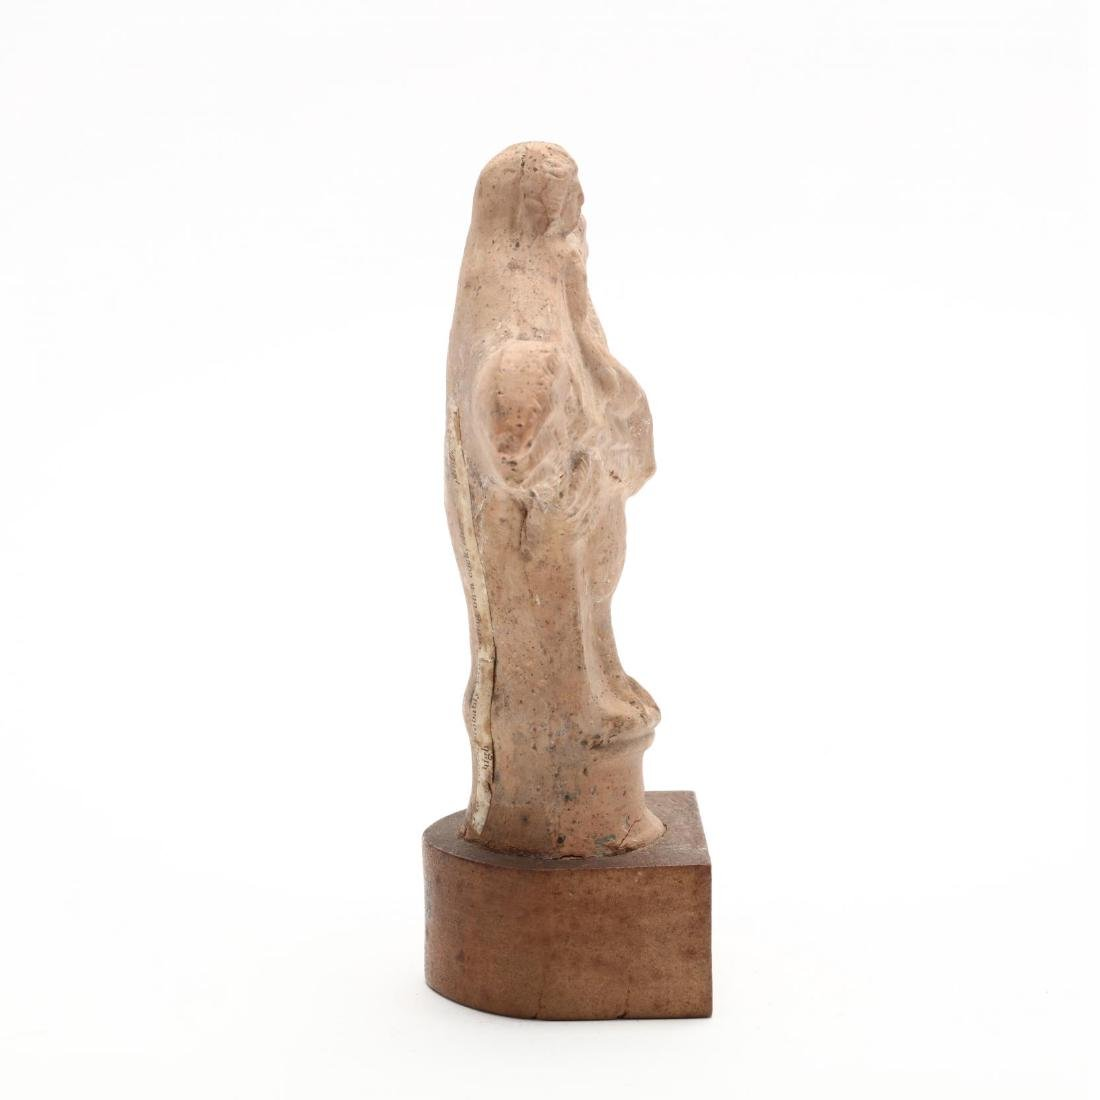 Cypriot Molded Hellenistic Terracotta Sculpture - 4